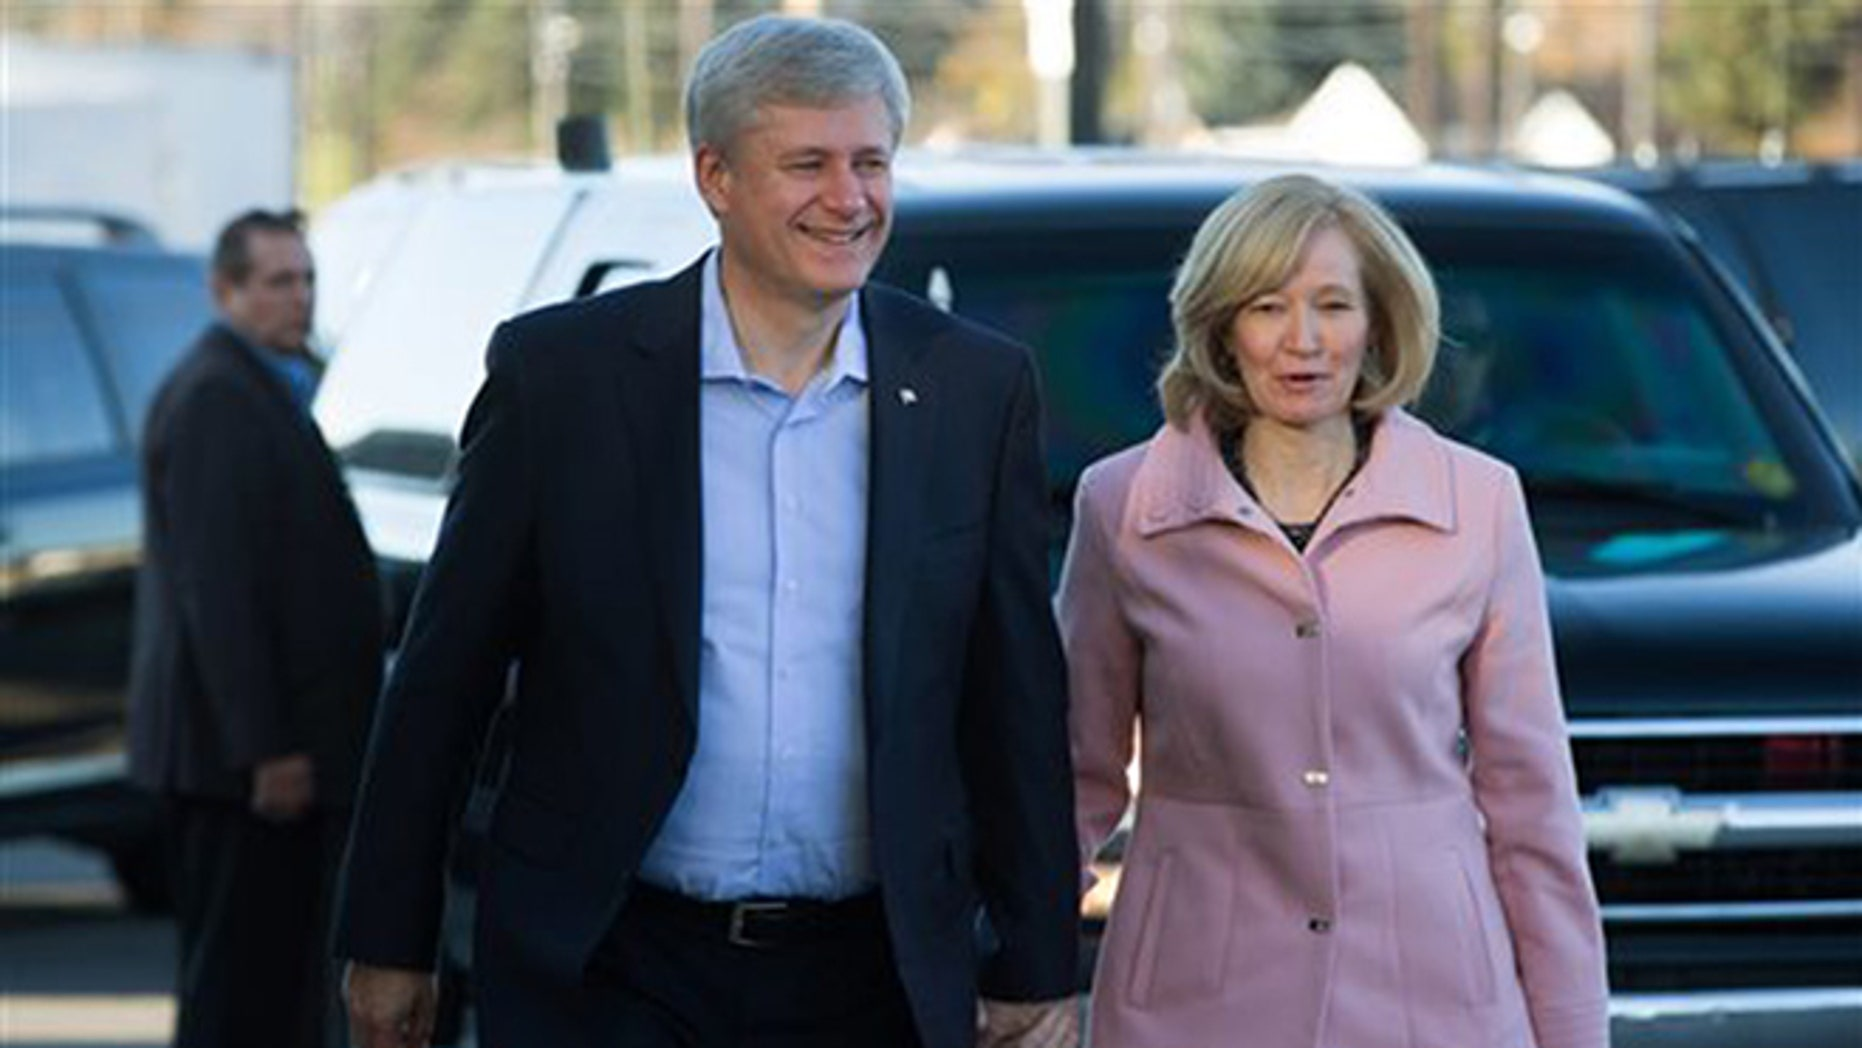 Conservative Leader, Prime Minister Stephen Harper, left, and his wife Laureen arrive to cast their ballots in the federal election in Calgary, Alberta, on Monday, Oct. 19, 2015. Canadians voted Monday to decide whether to extend Harper's near-decade in power or return Canada to its more liberal roots. (Darryl Dyck/The Canadian Press via AP) MANDATORY CREDIT